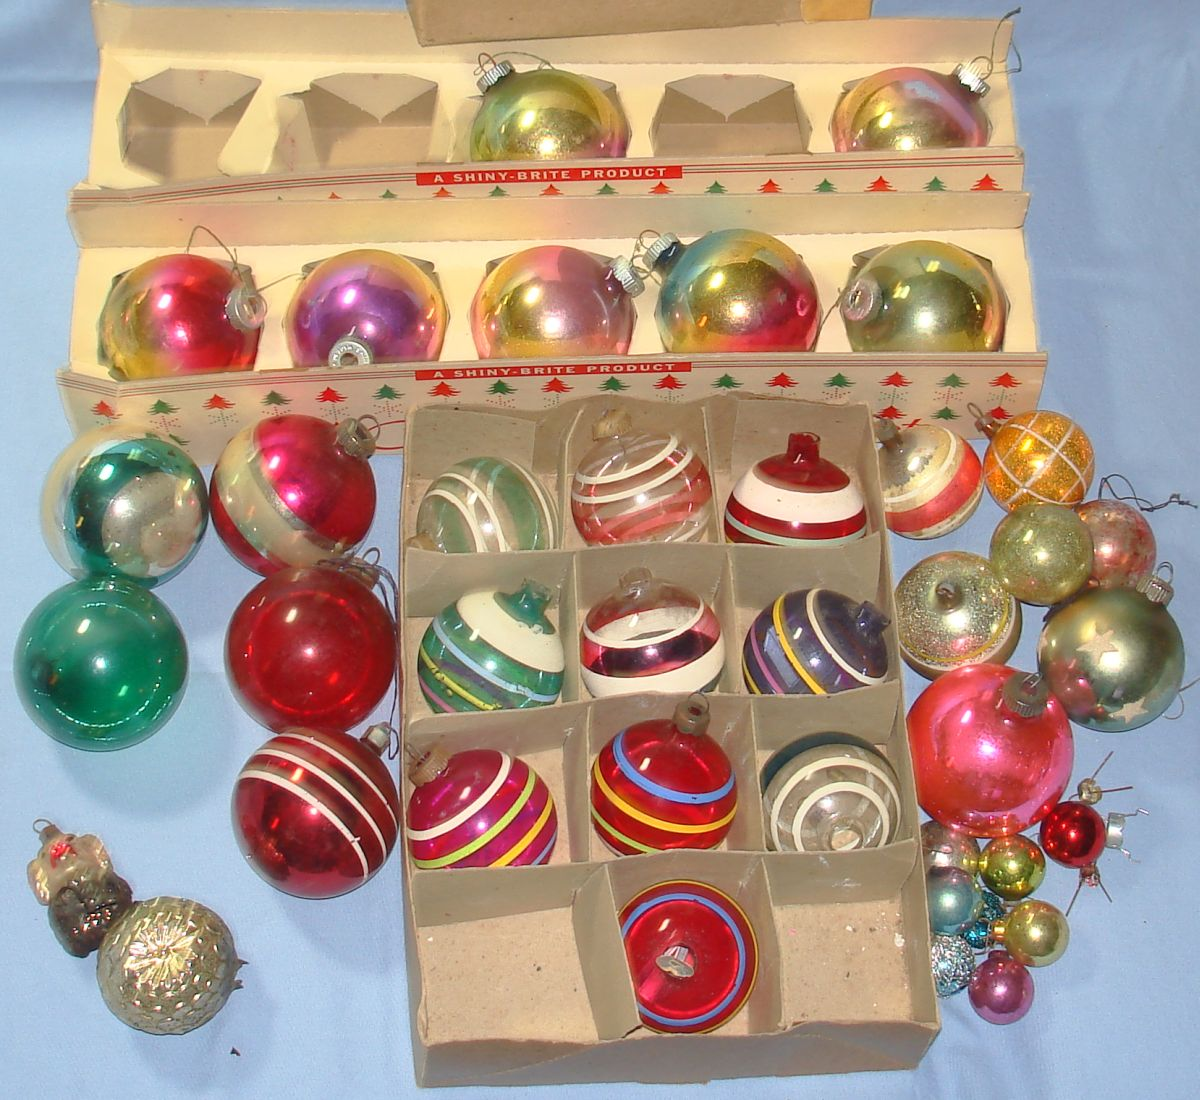 How Retro.com: Vintage-Style Christmas Ornaments